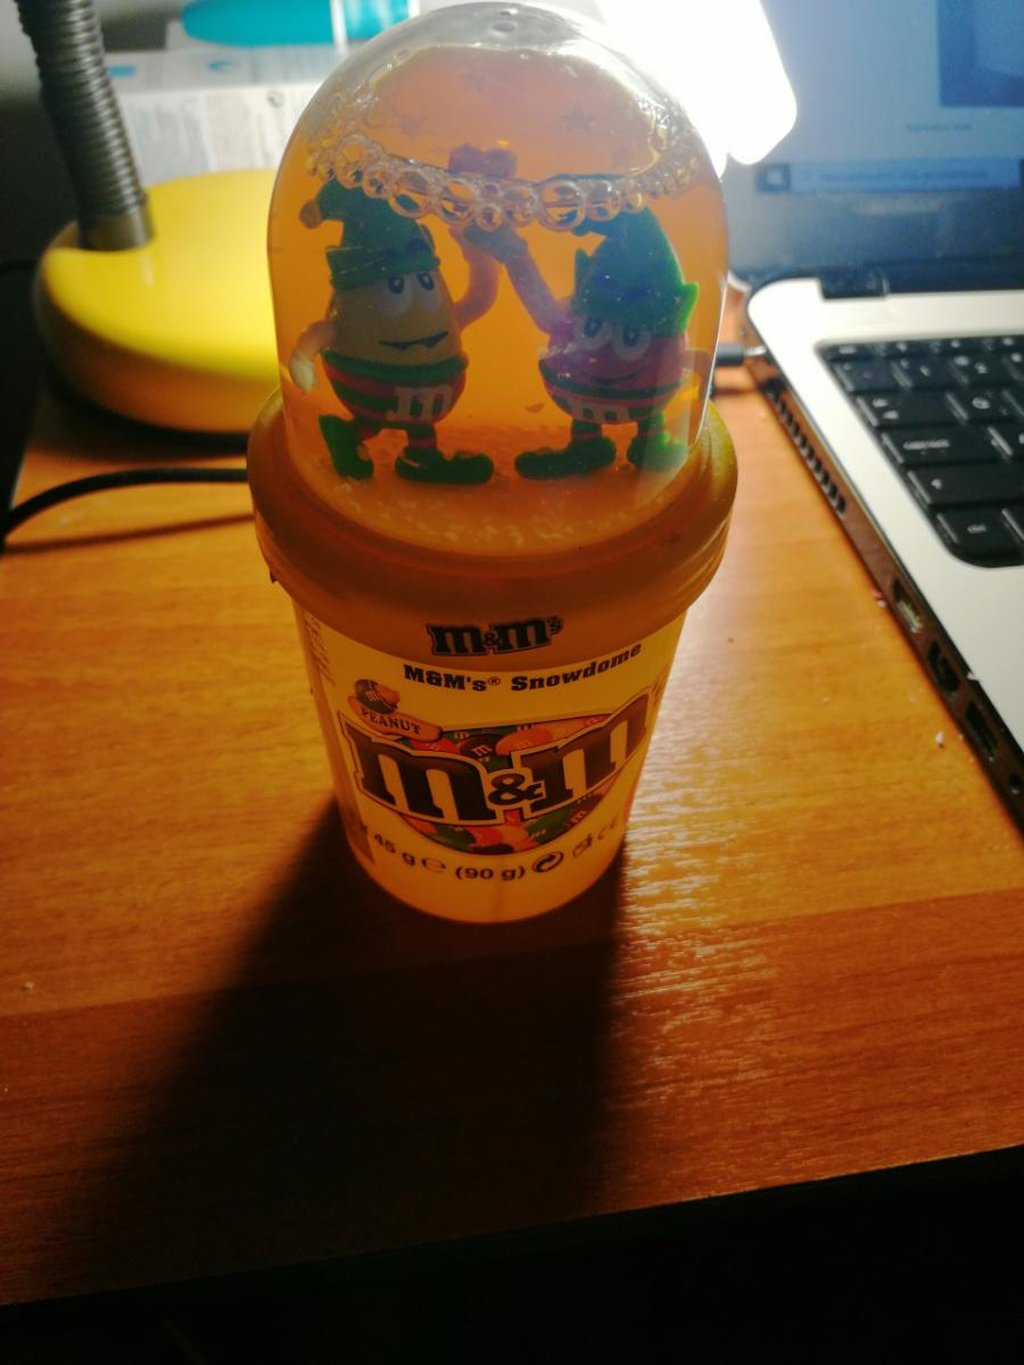 M&m's Snow Globe limited edition. No candy inside